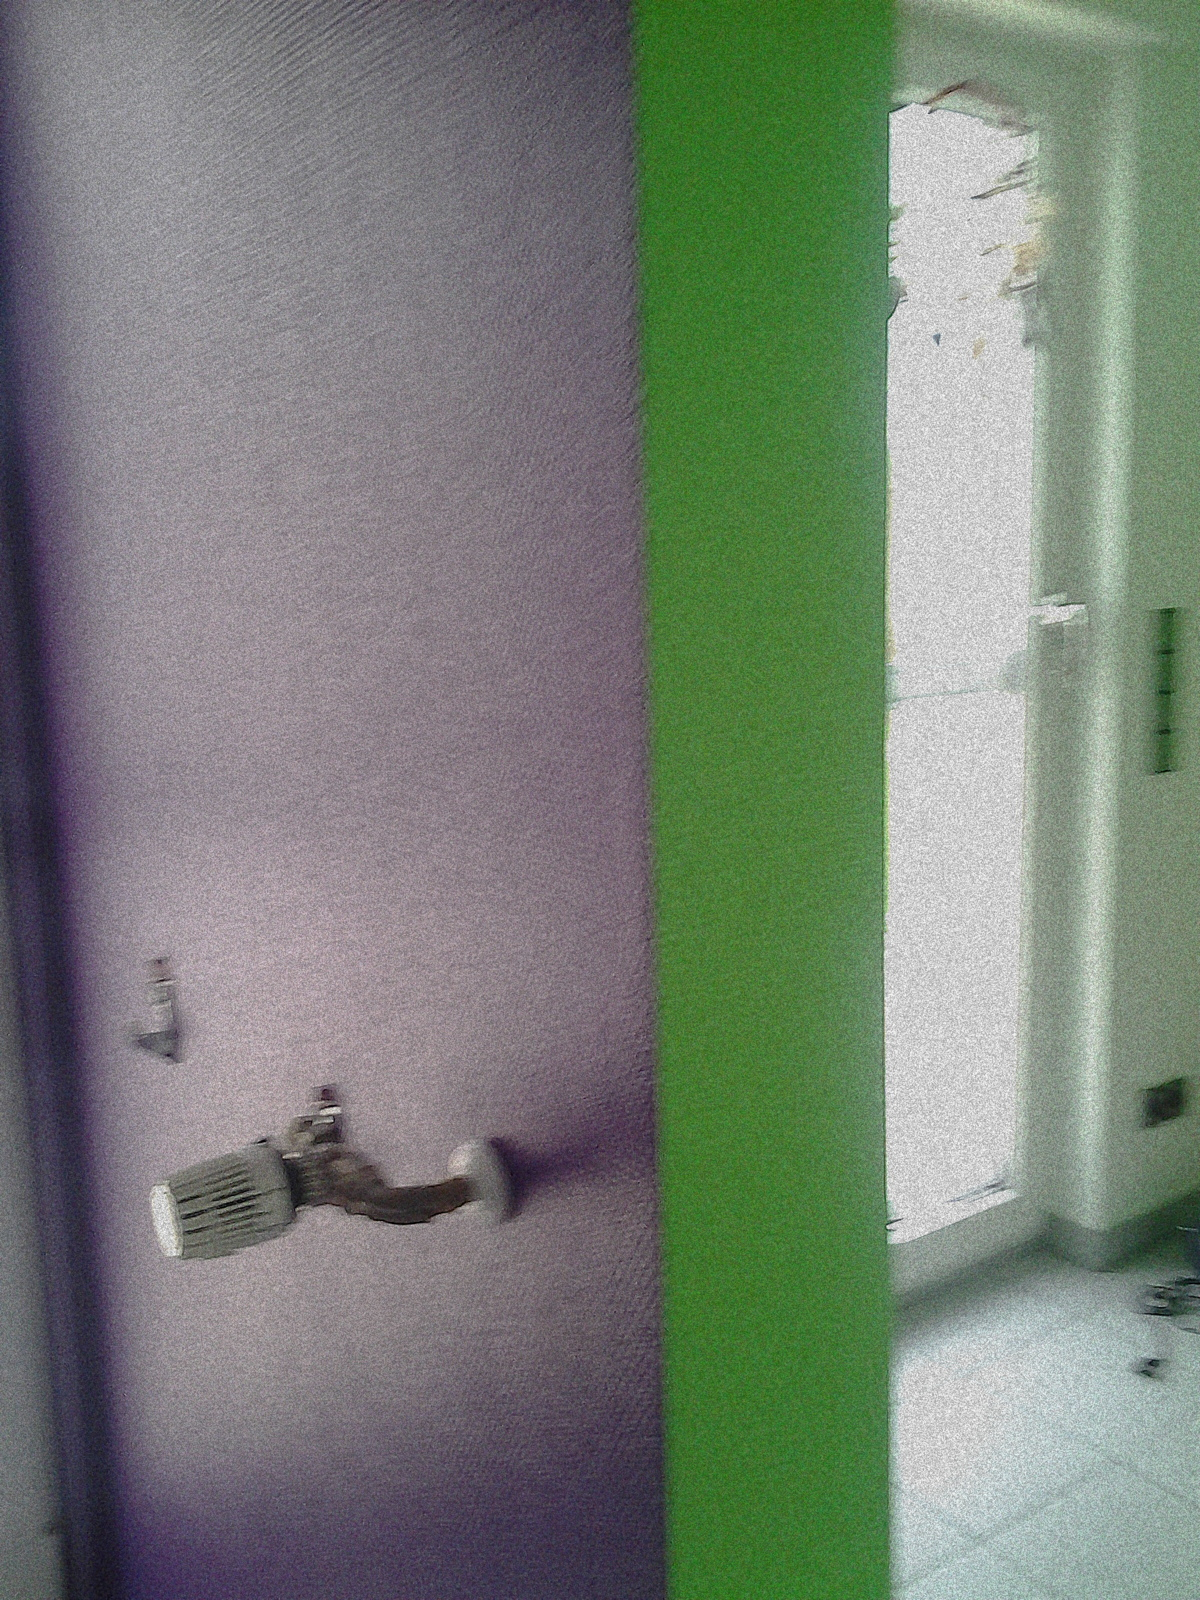 It's my world: wonderful: i need a room with new colours!!!